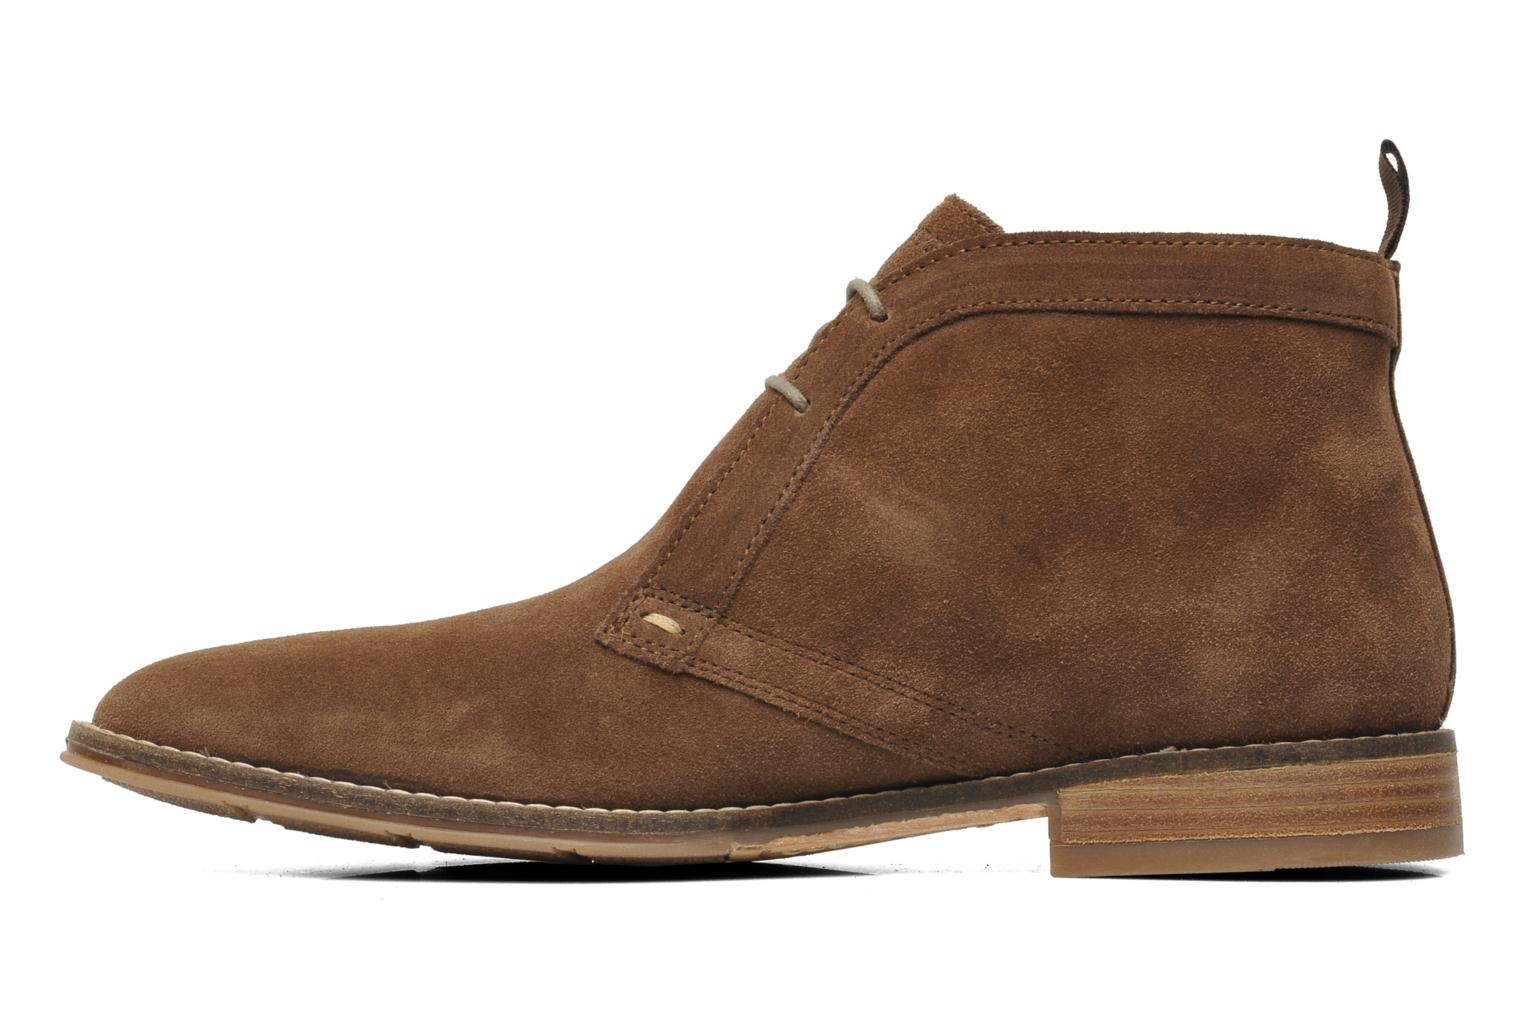 Chaussures à lacets Hush Puppies Style Chukka Marron vue face